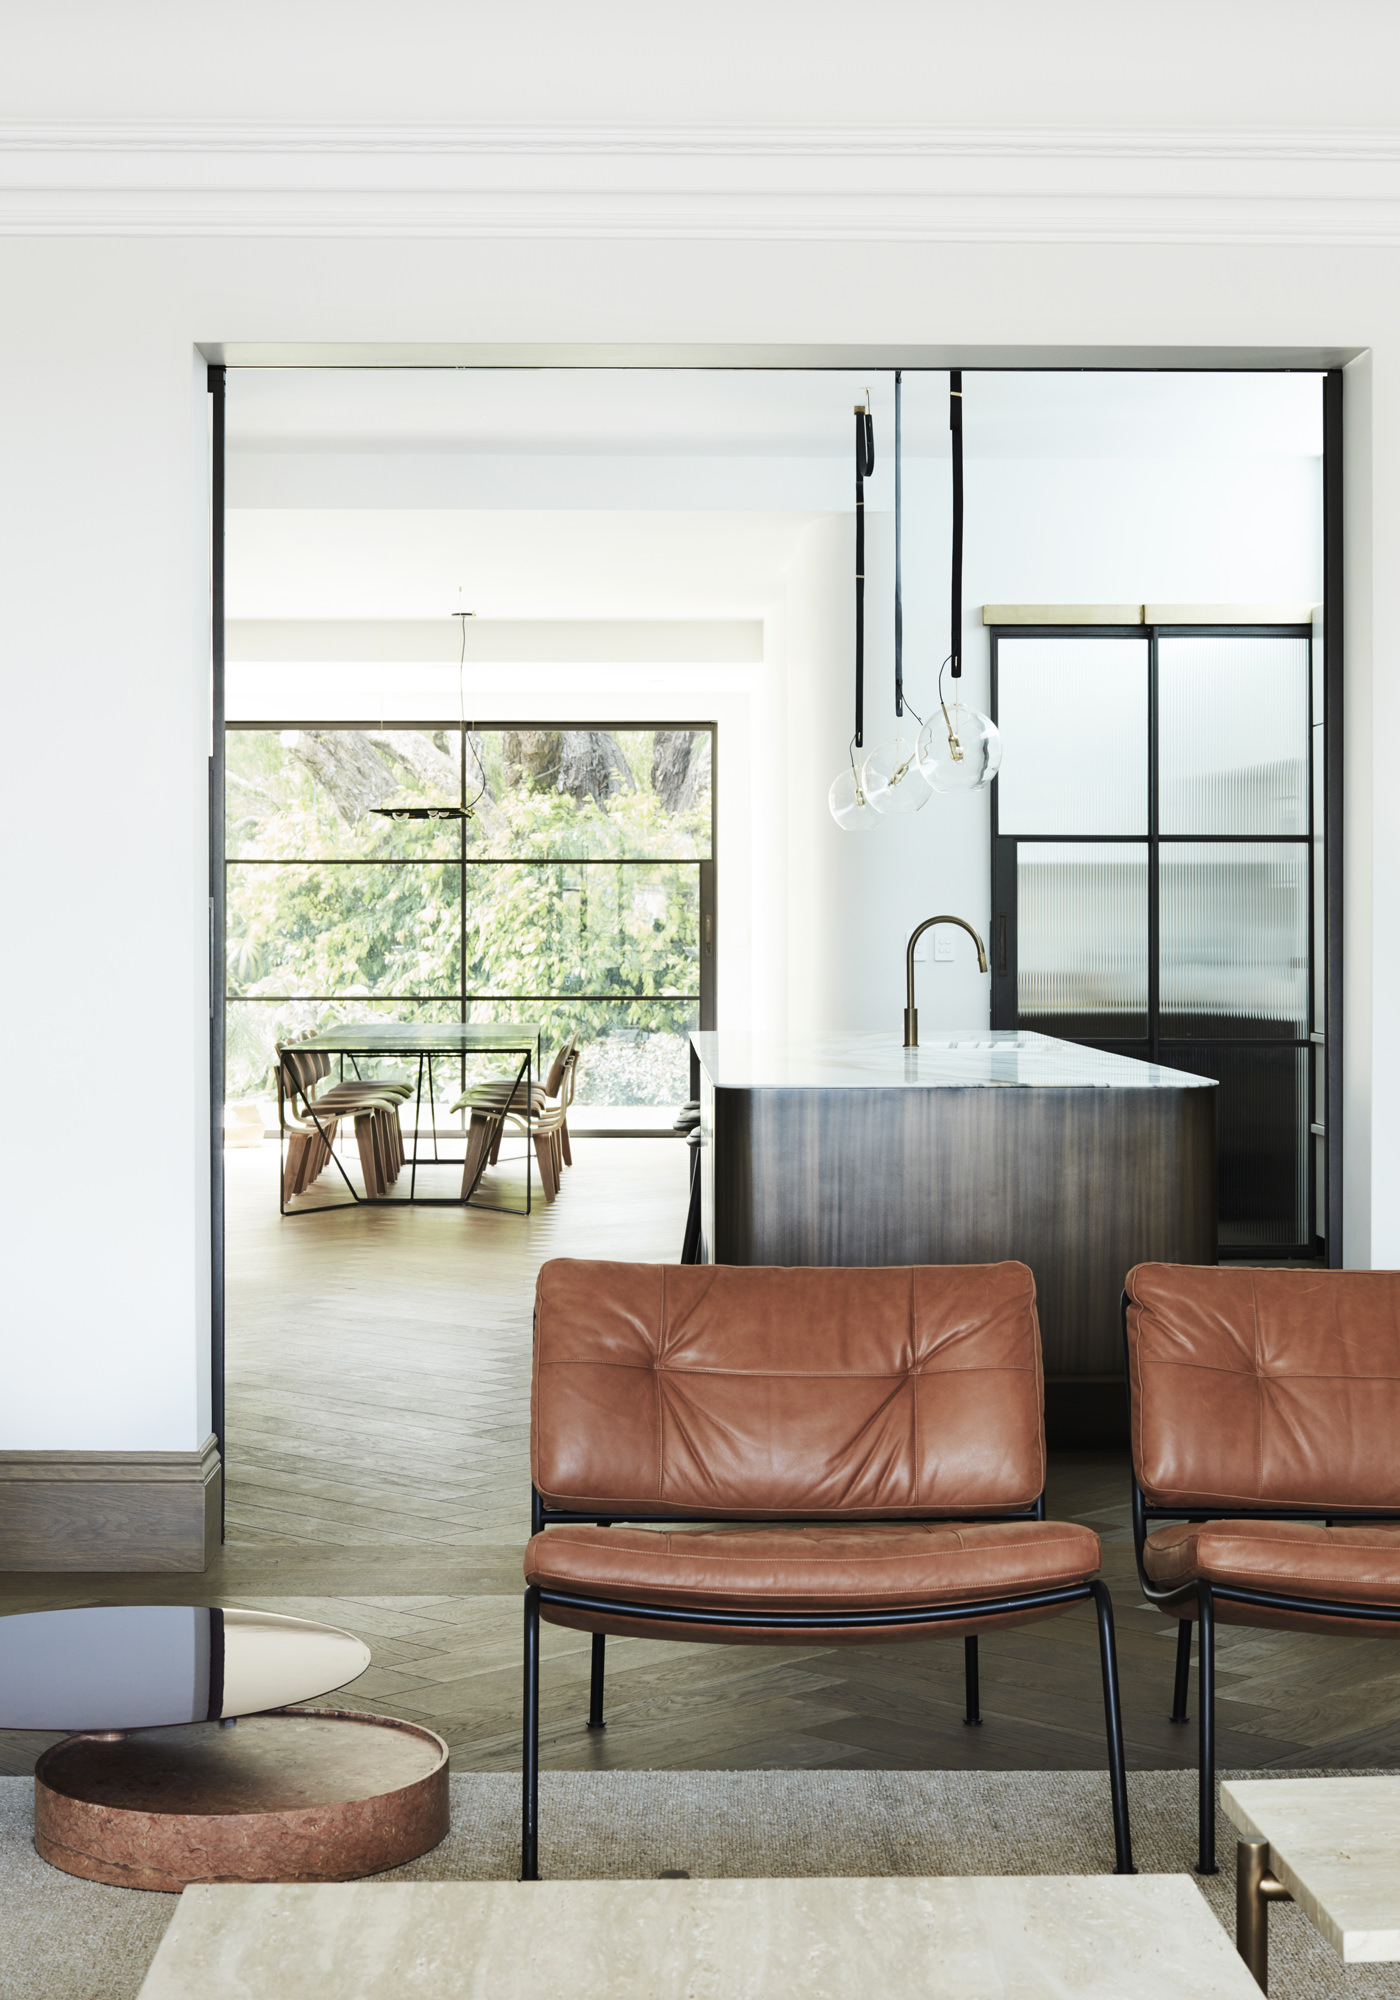 Architecture PepperTree Villa Bellevue Hill Sydney Mobiliers Fauteuils